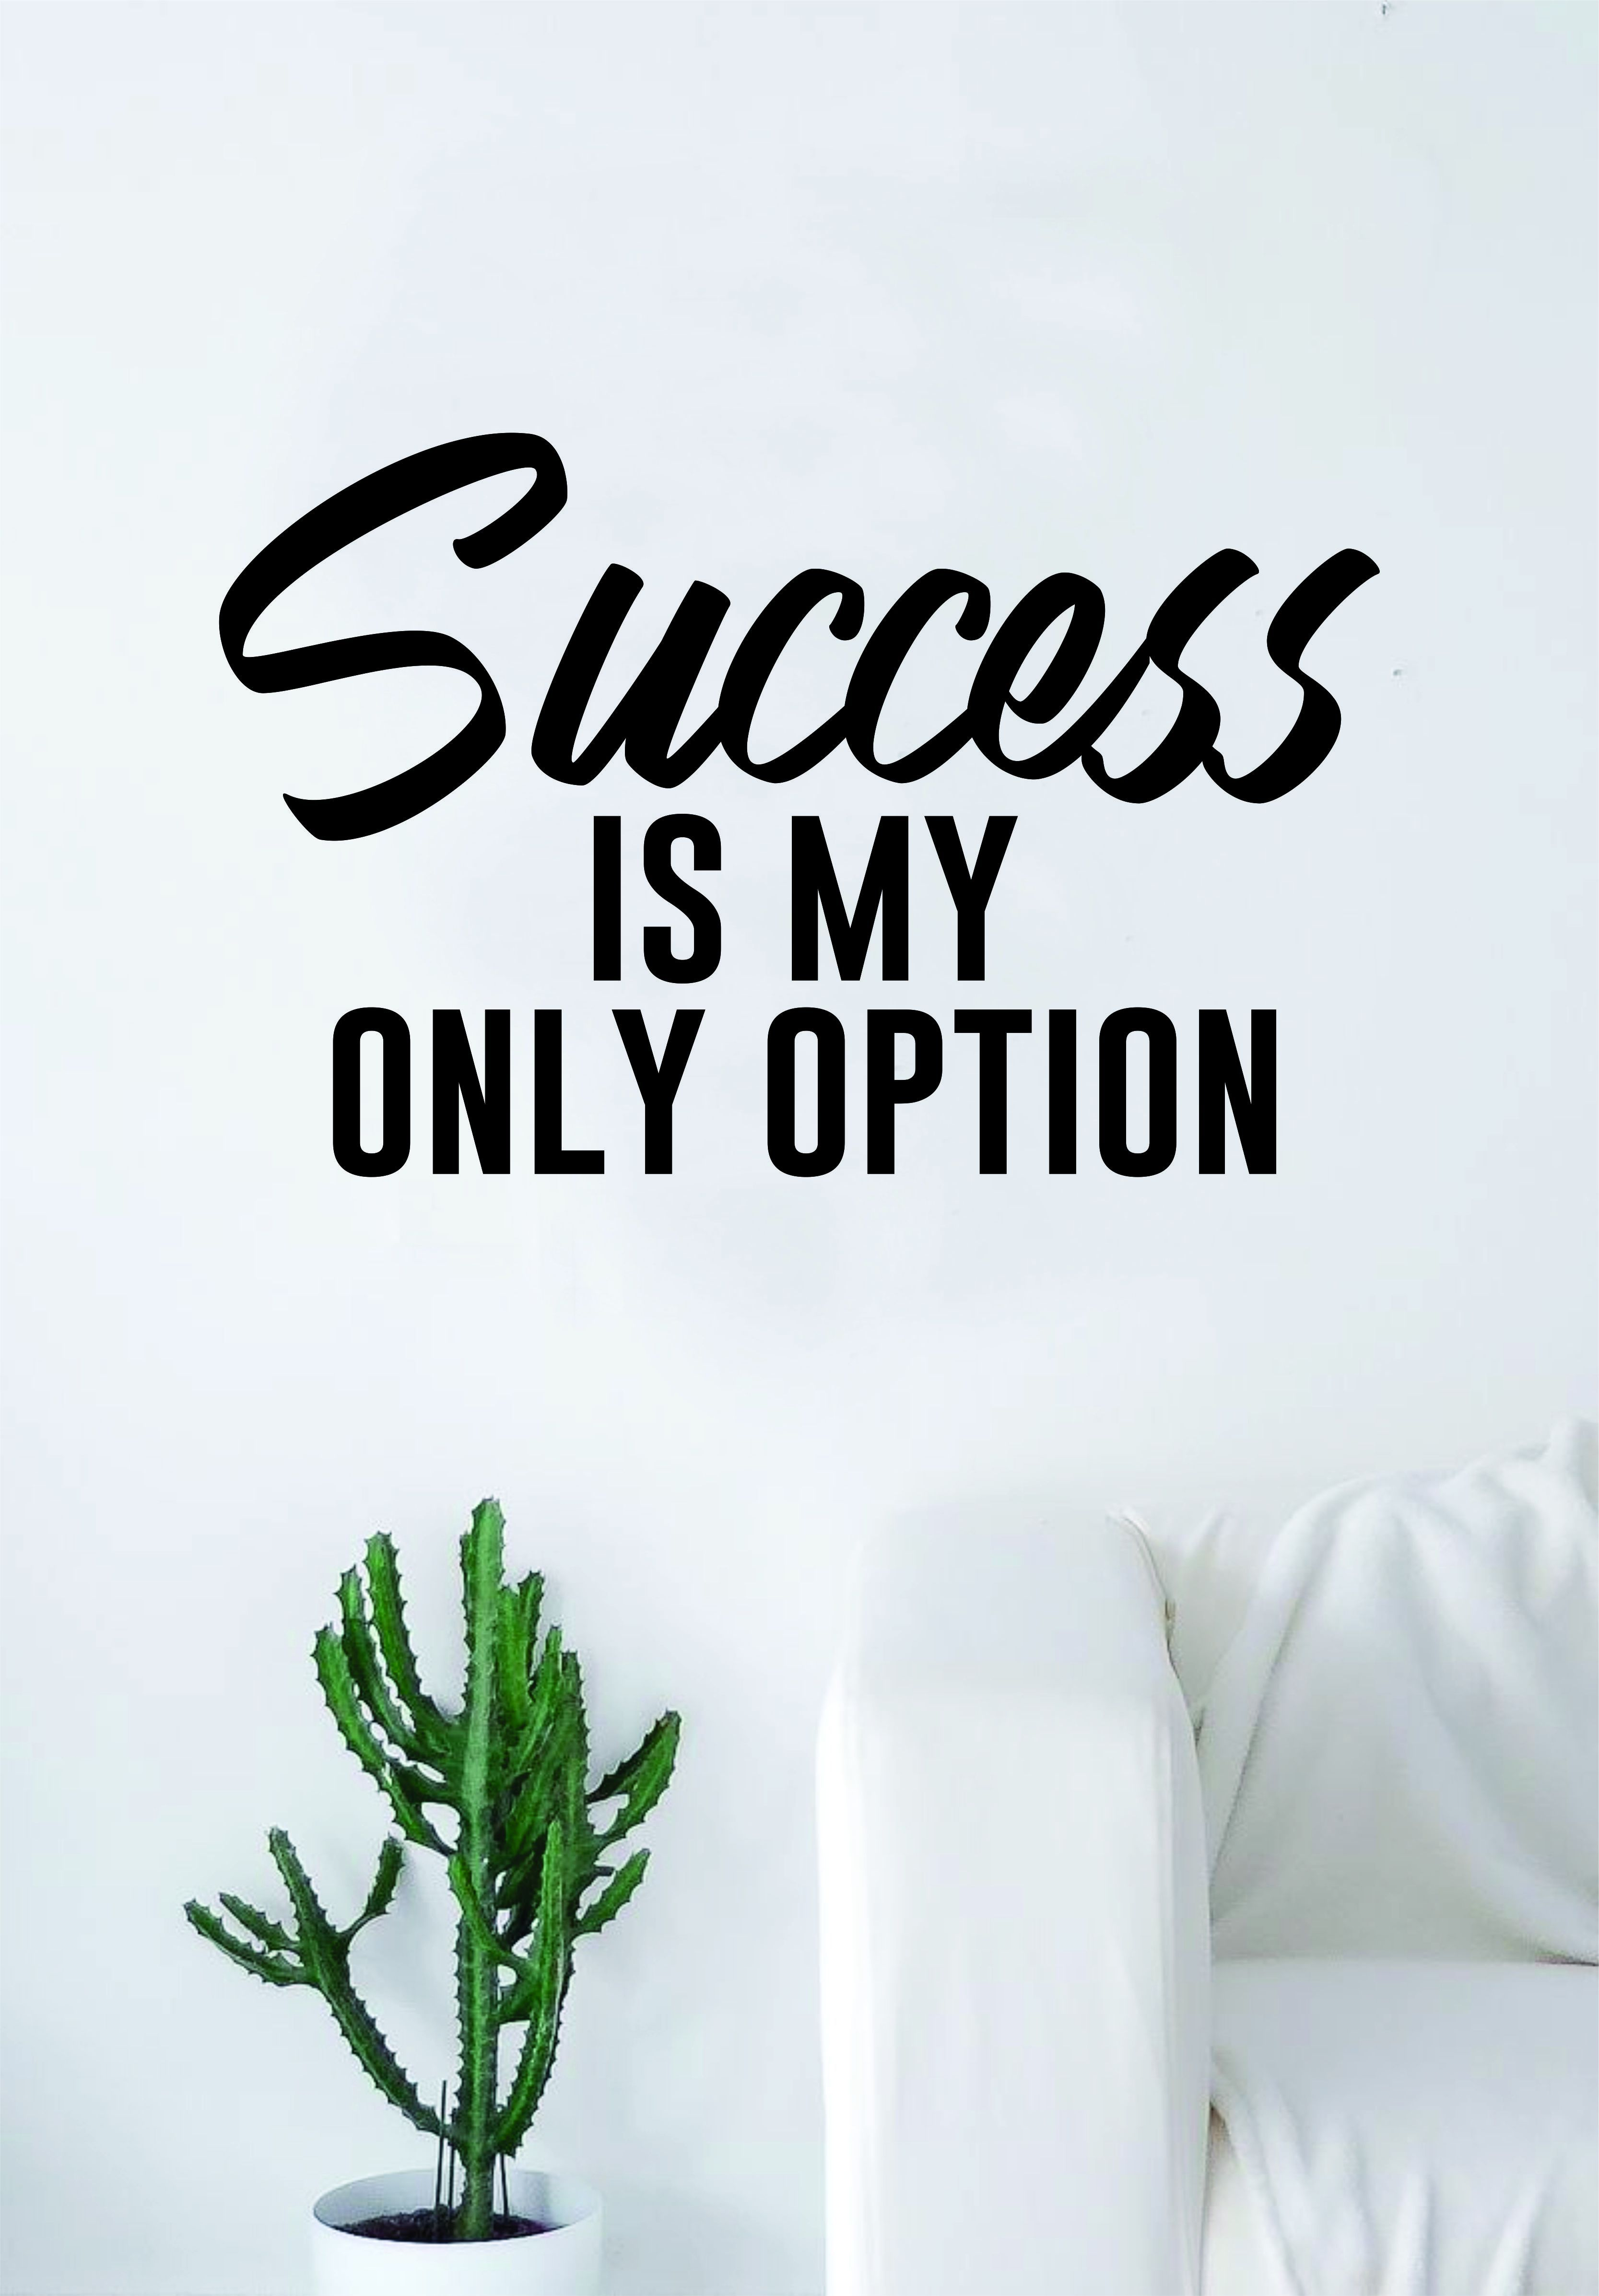 success is my only option quote wall decal sticker room art vinyl rh pinterest com